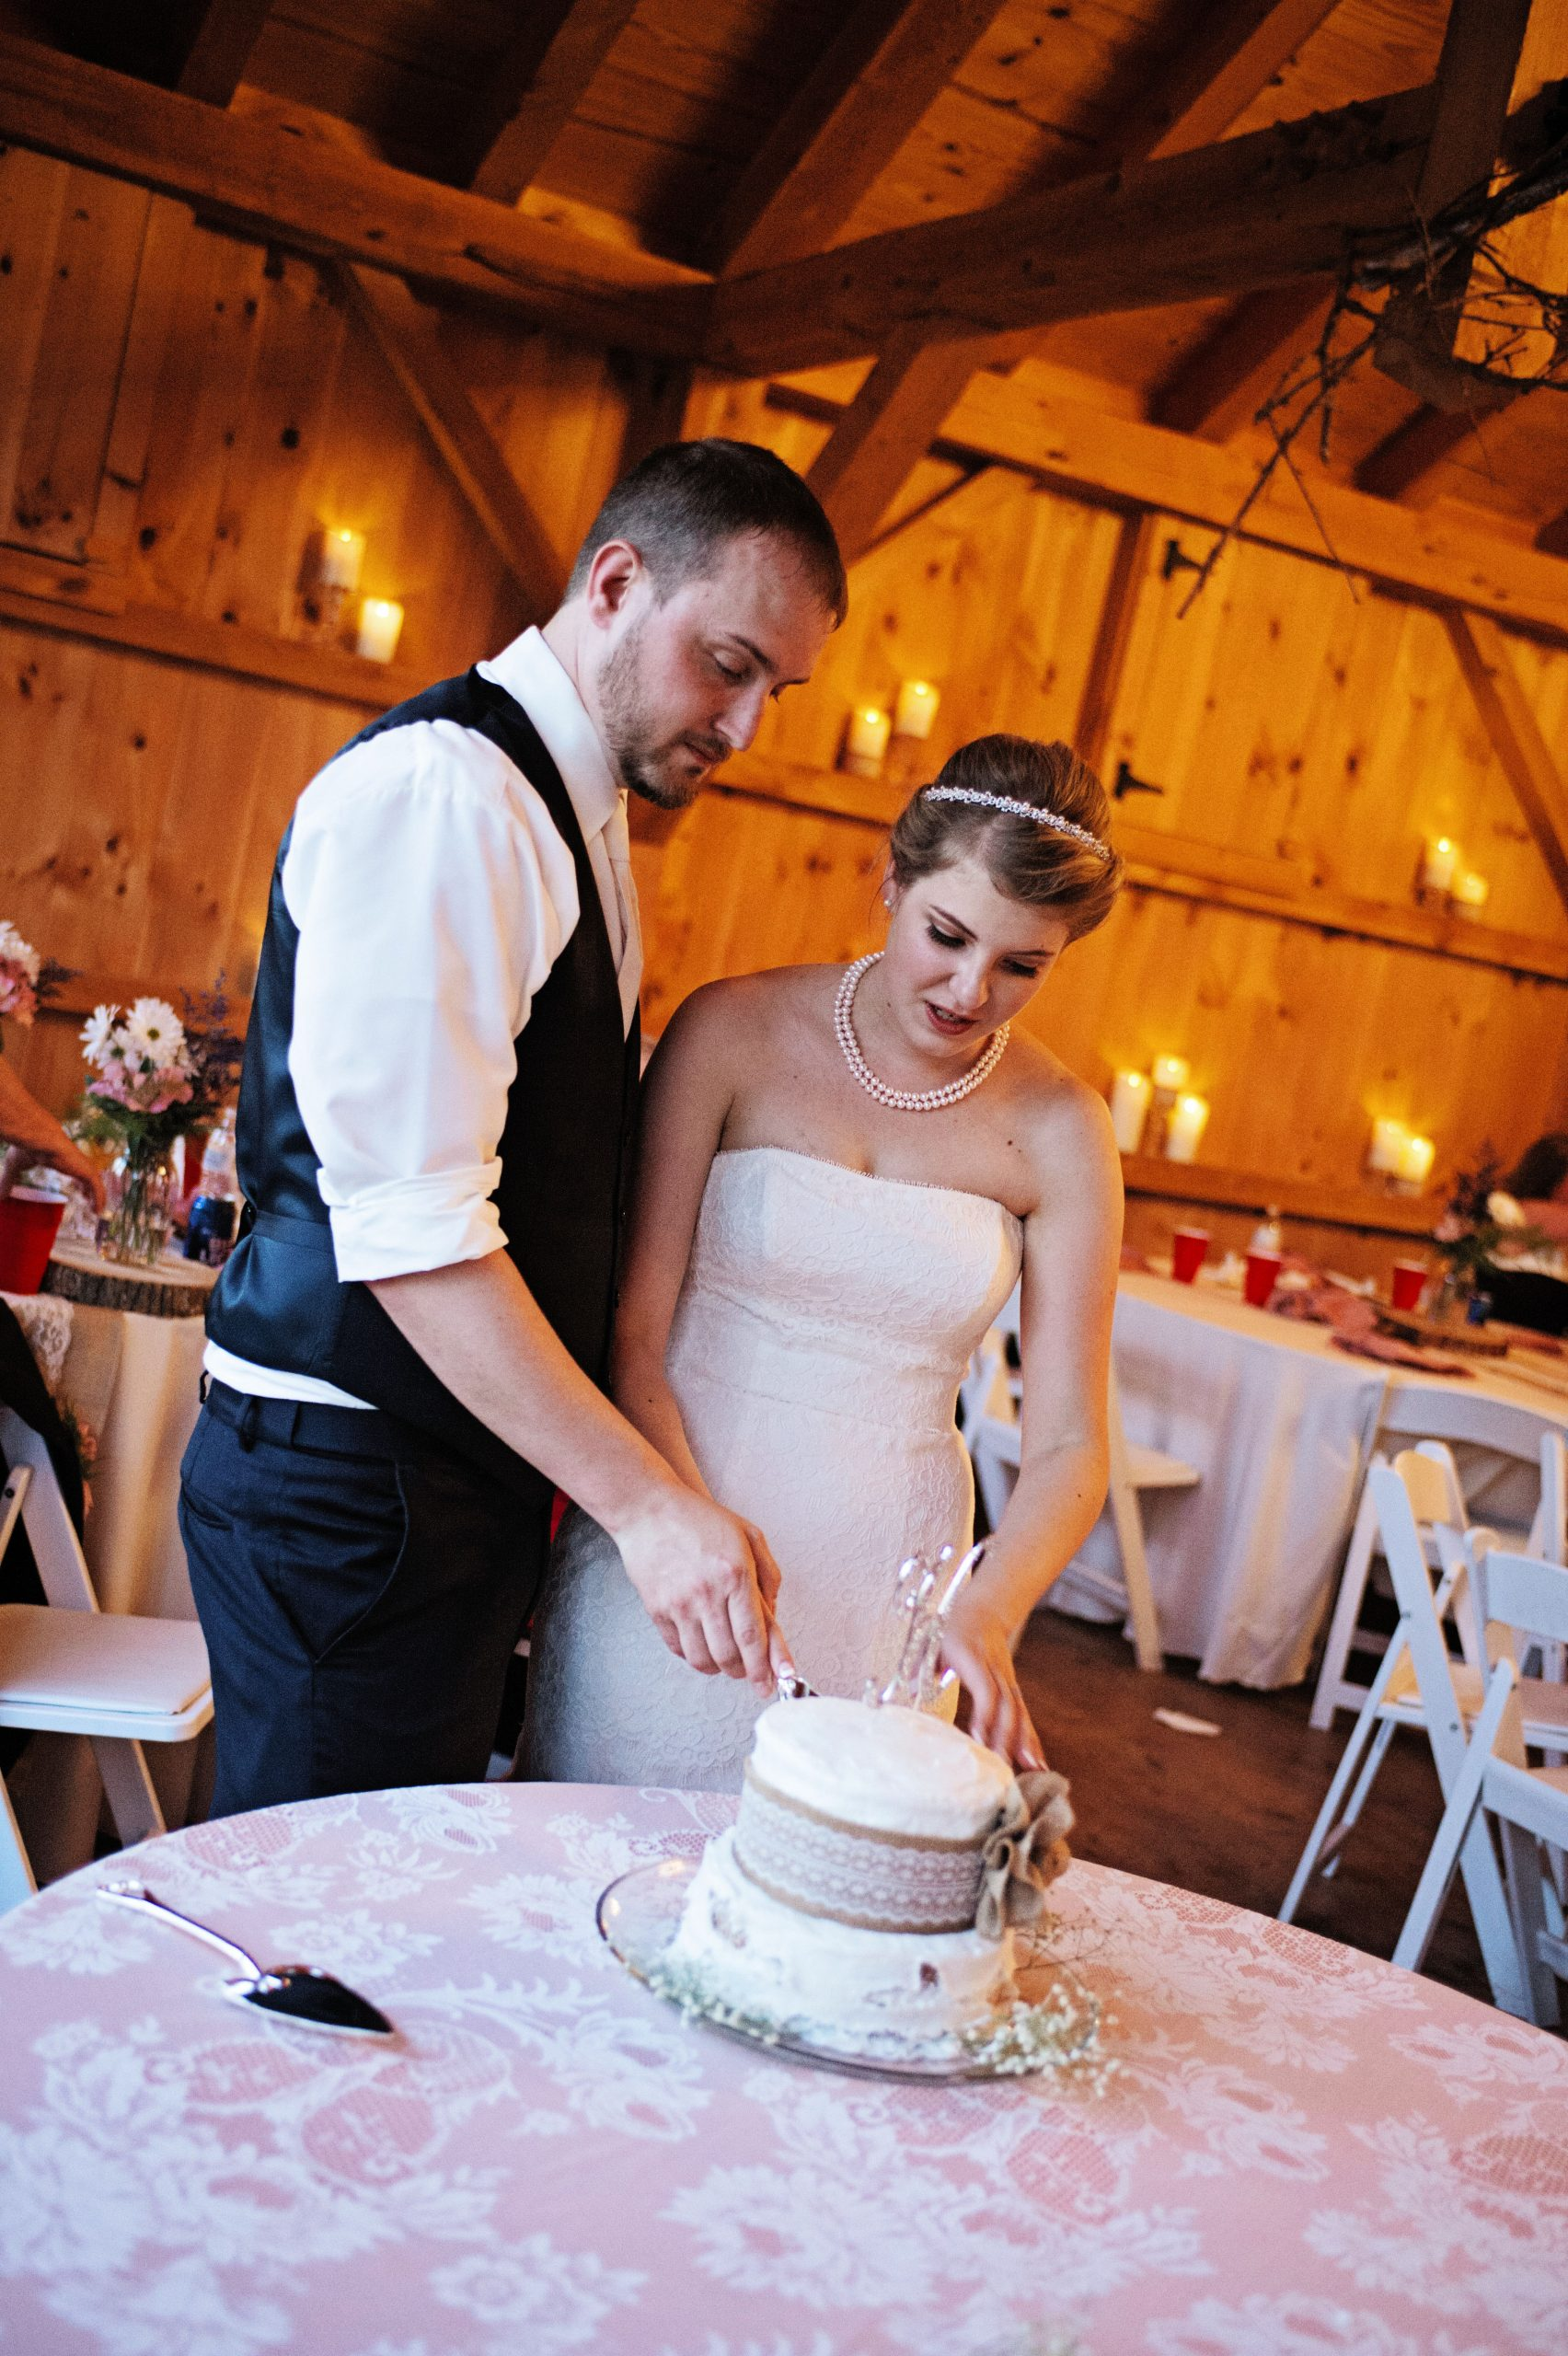 Loving couple cuts into their wedding cake at Lakeview Farms in York, PA. Lovefusion Photography had the privilege of capturing these intimate moments. Featured on Dream Weddings.